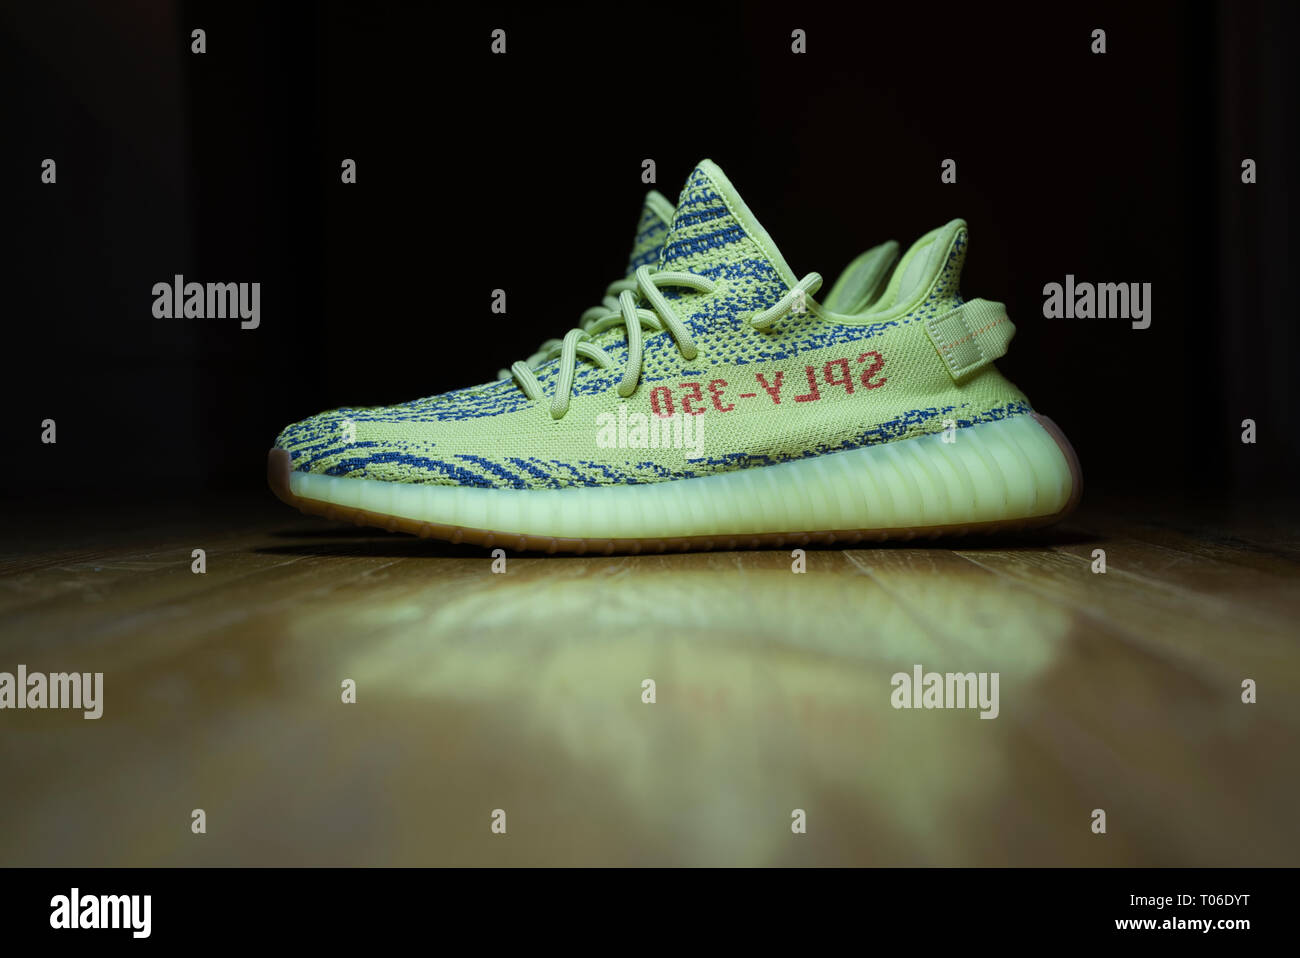 25203ad518705 Yeezy Boost 350 Stock Photos   Yeezy Boost 350 Stock Images - Alamy